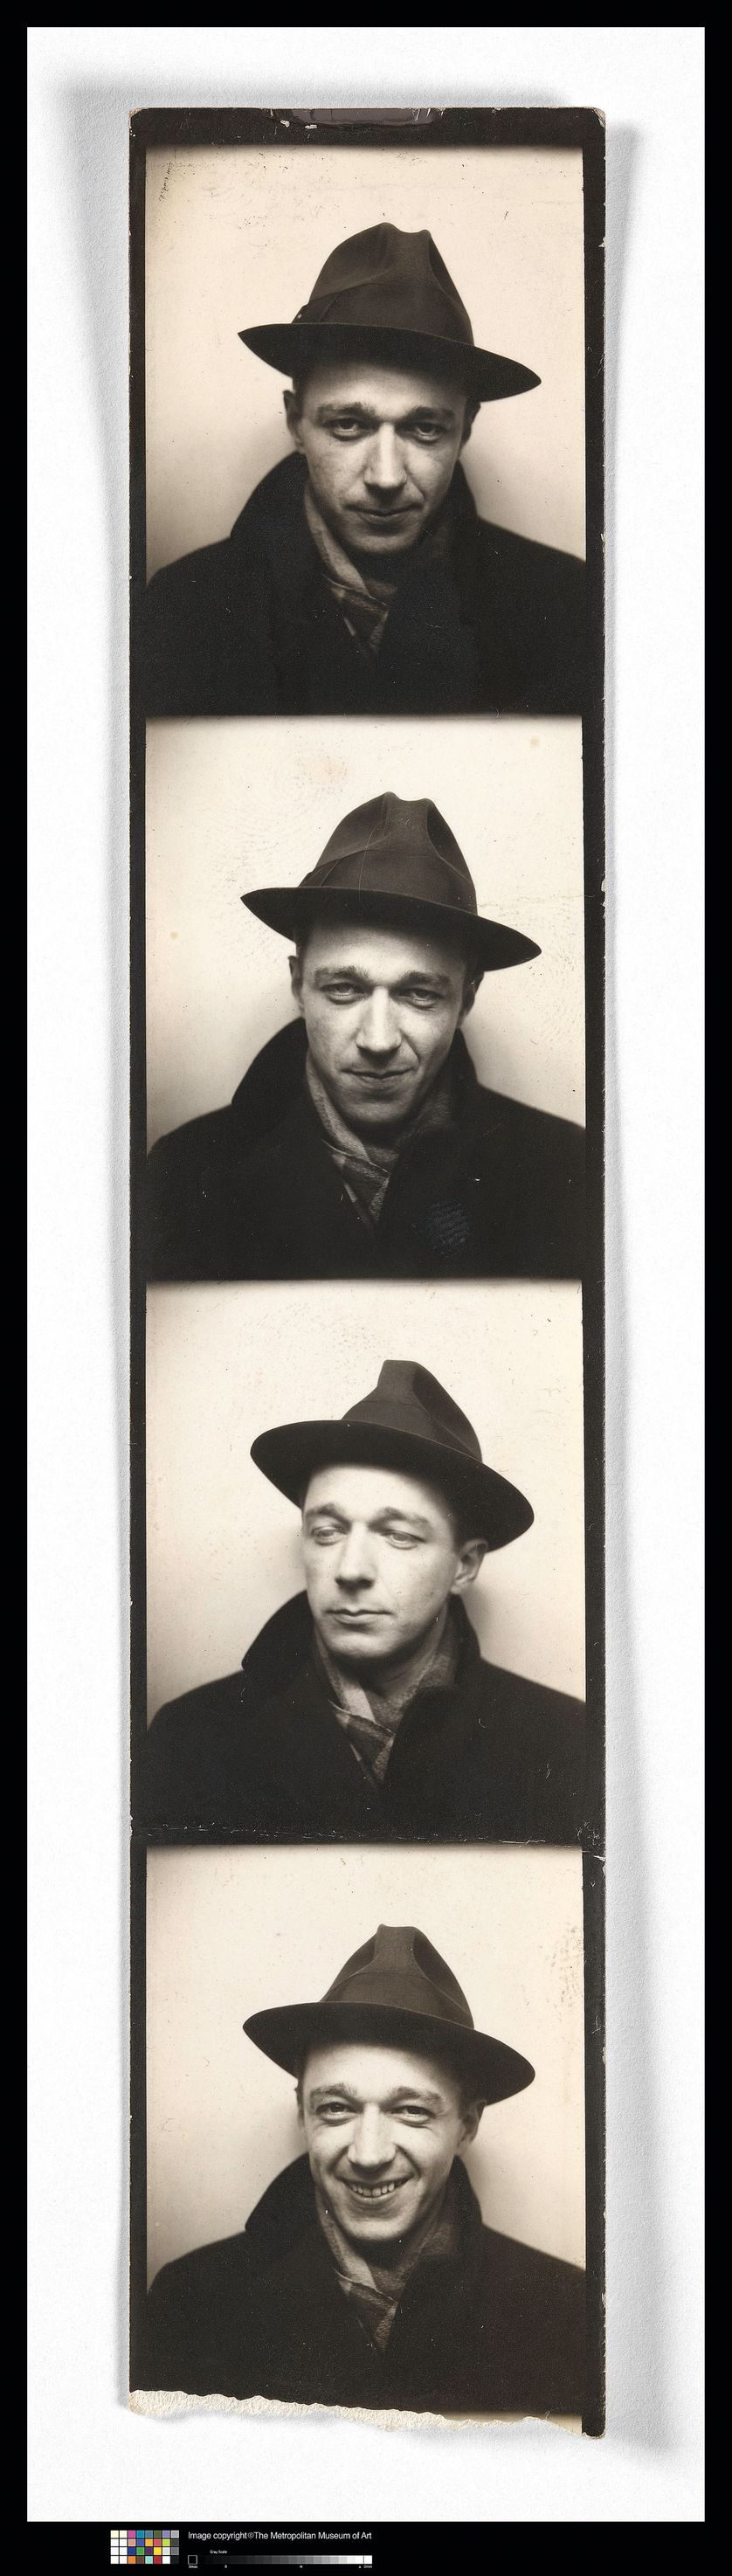 Walker Evans, Self Portrait in Automated Photobooth